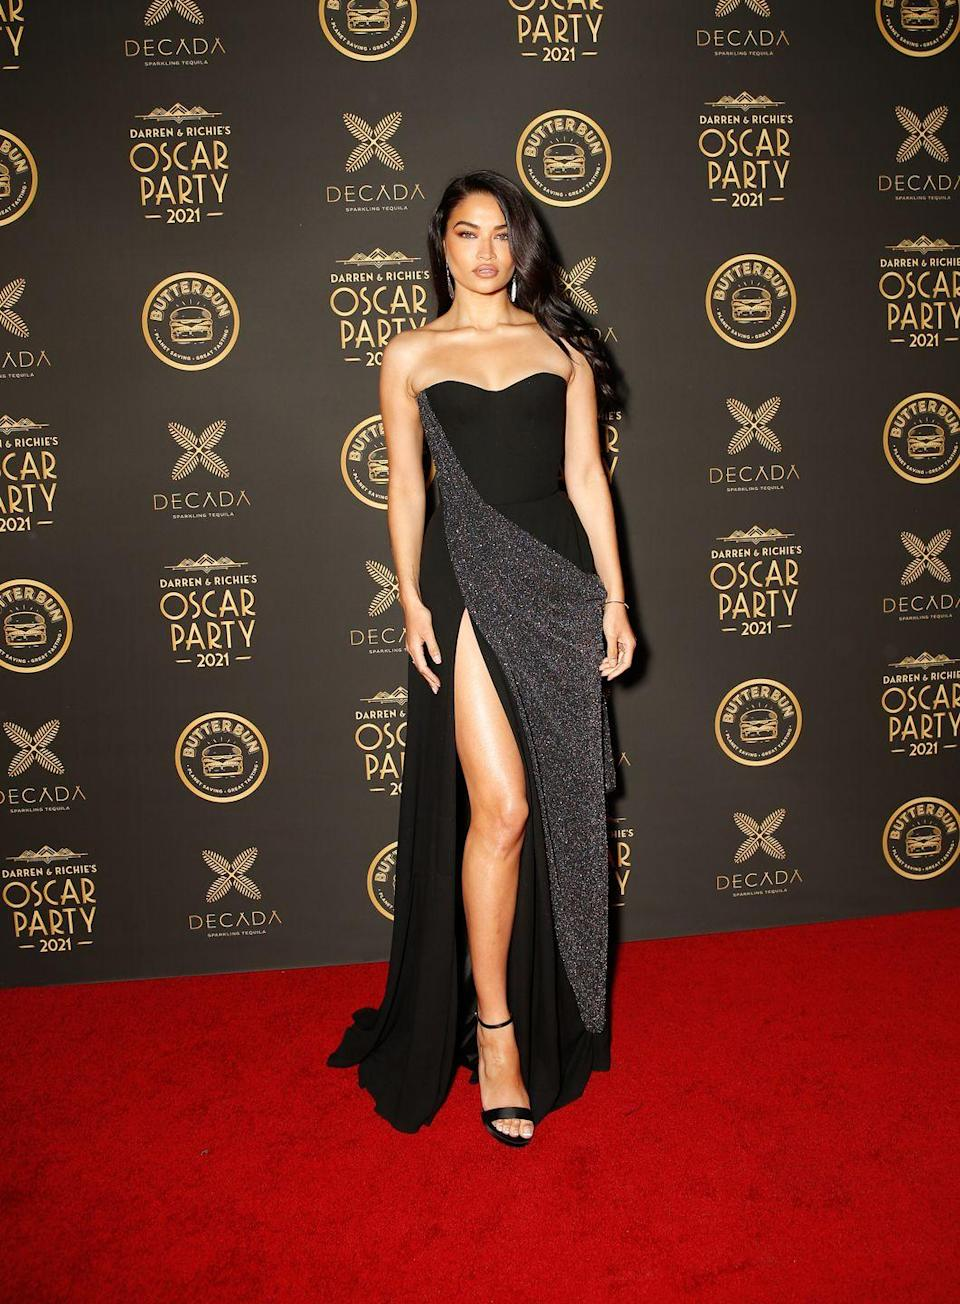 <p>The model wore a black off-the-shoulder gown by Ulyana Sergeenko to the after party.</p>